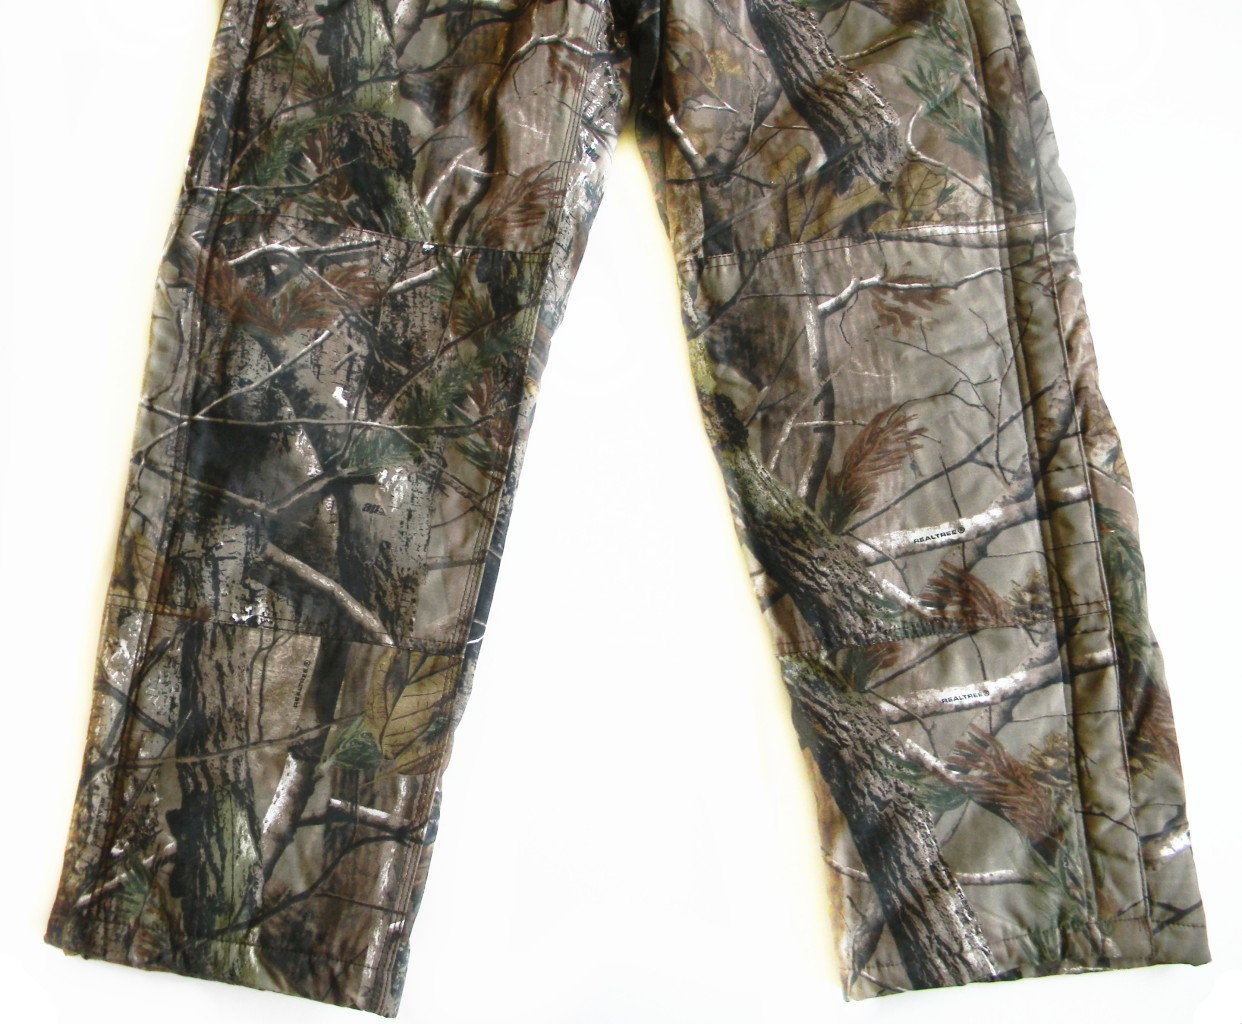 New Walls Realtree Ap Camo Insulated Padding Overall Bibs